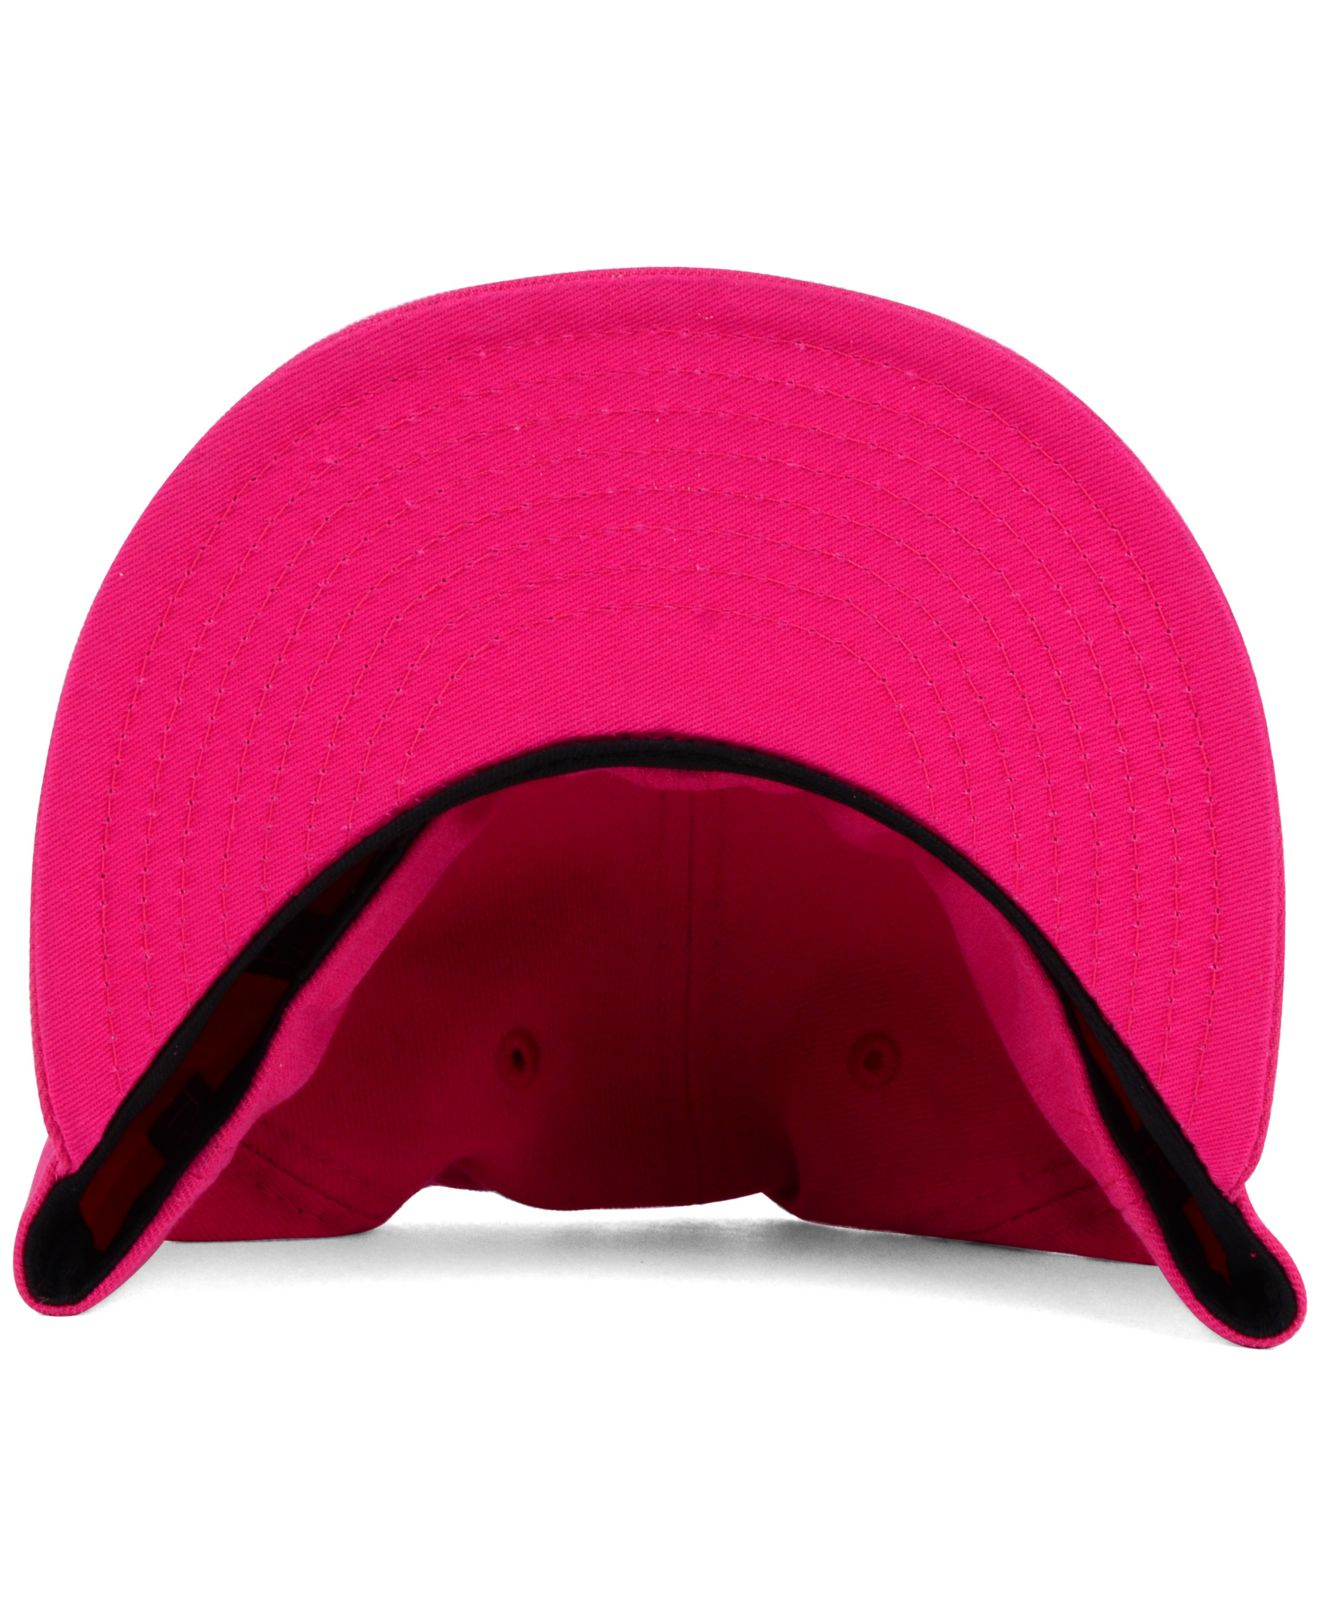 competitive price 7f2e0 729e2 KTZ Florida Panthers C-dub 59fifty Cap in Pink for Men - Lyst